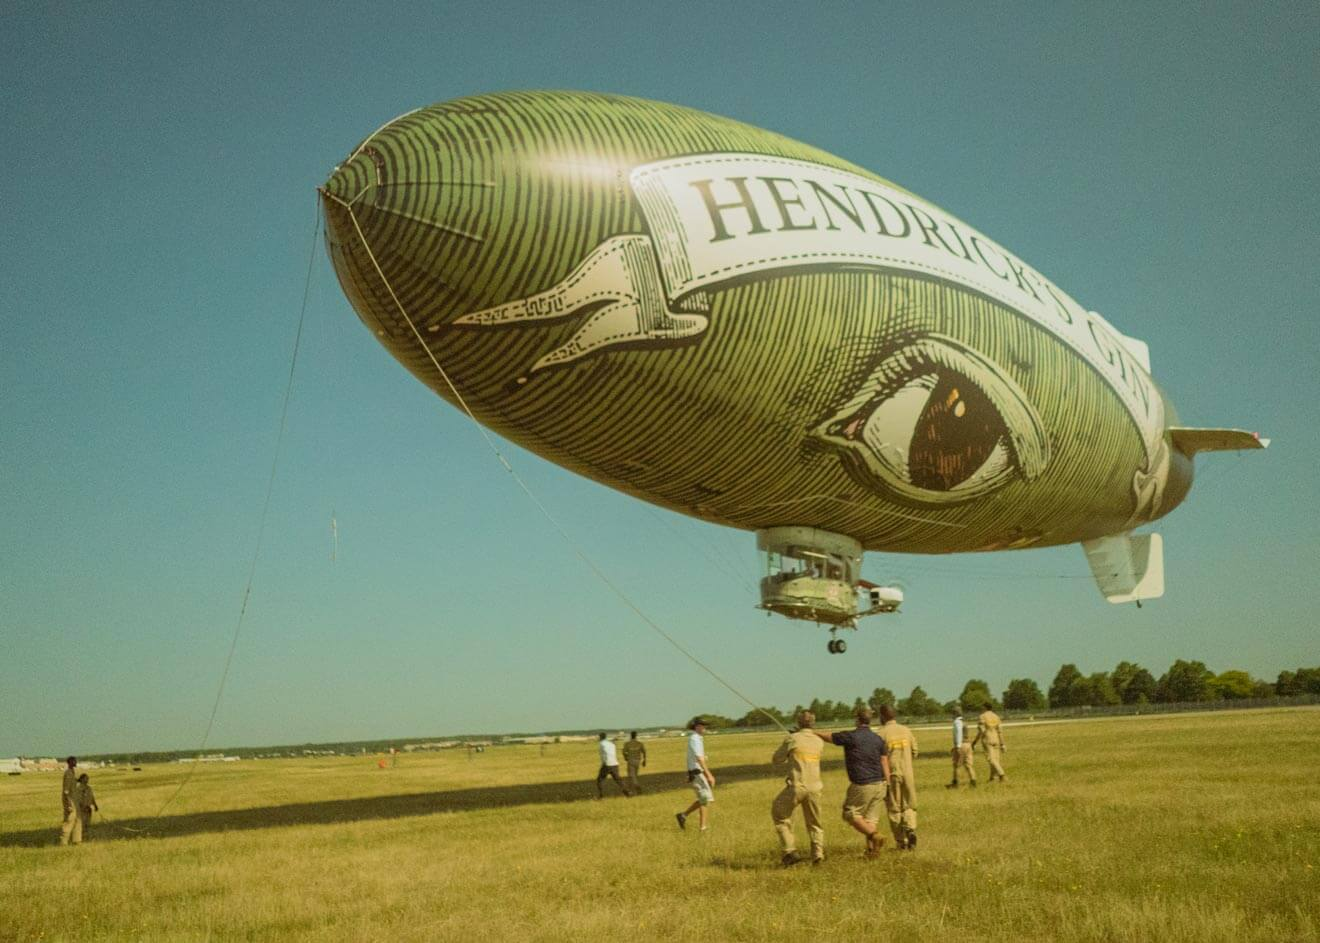 Hendrick's Gin Flying Cucumber Airship. industry news